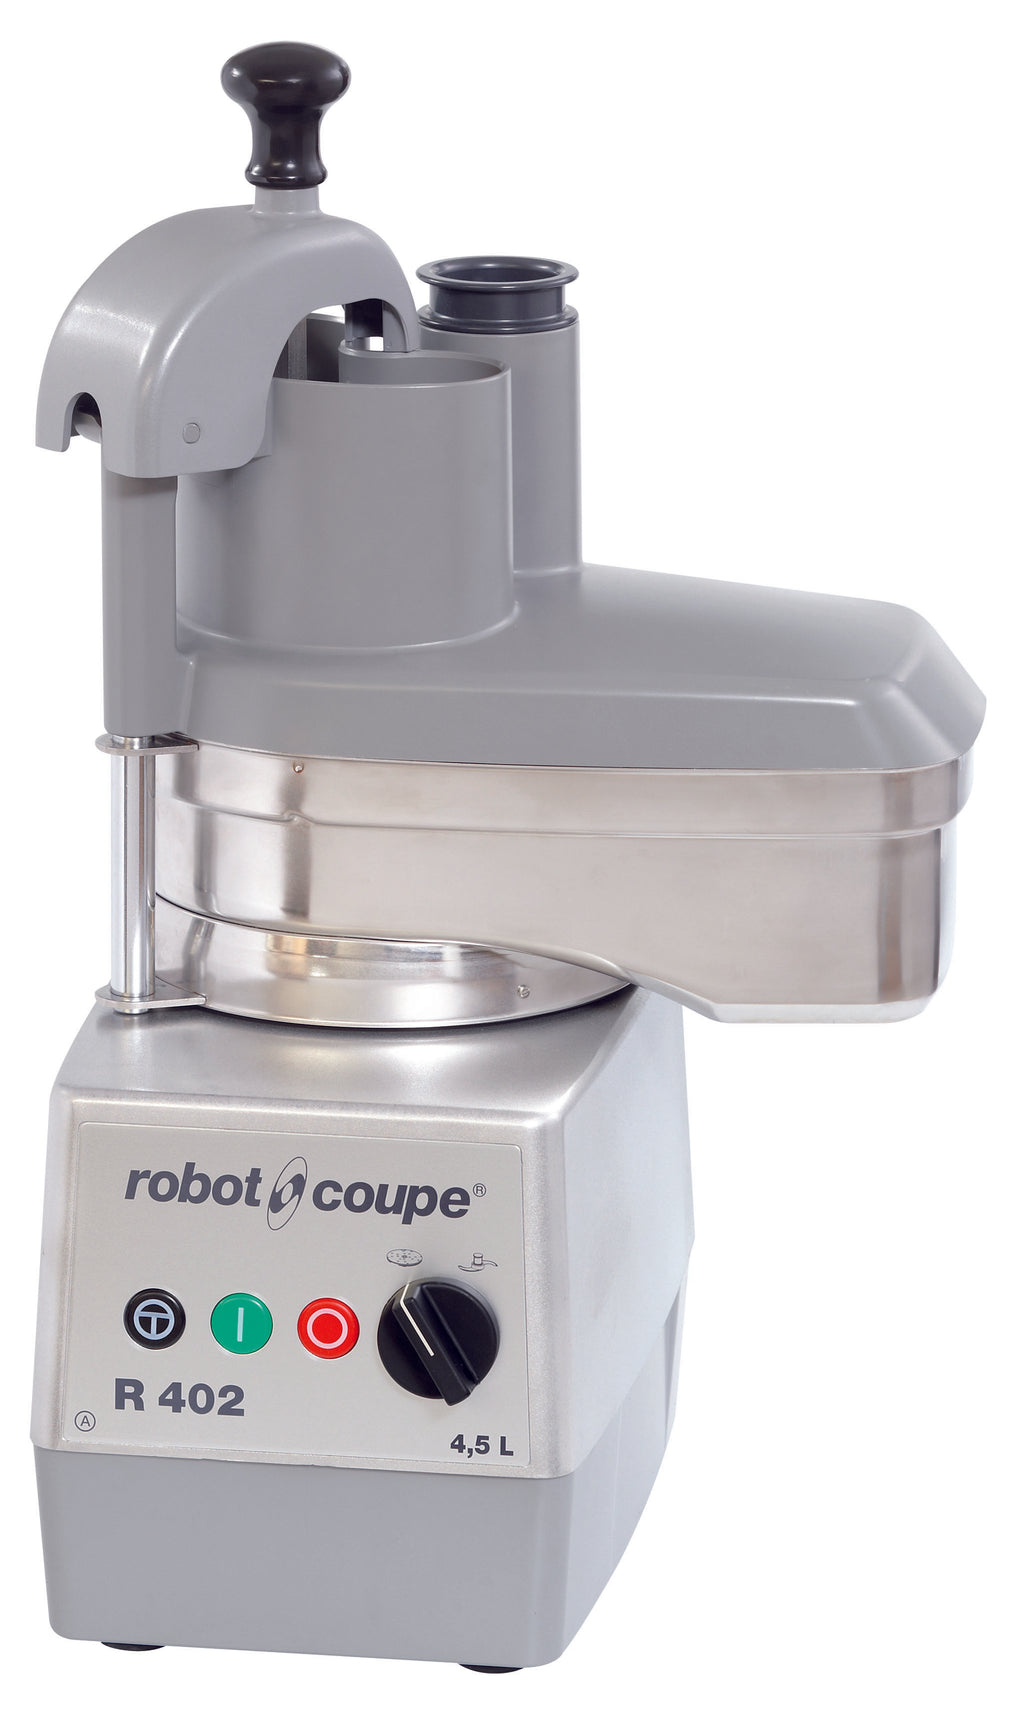 Robot Coupe R 402 Cutter & Vegetable slicer